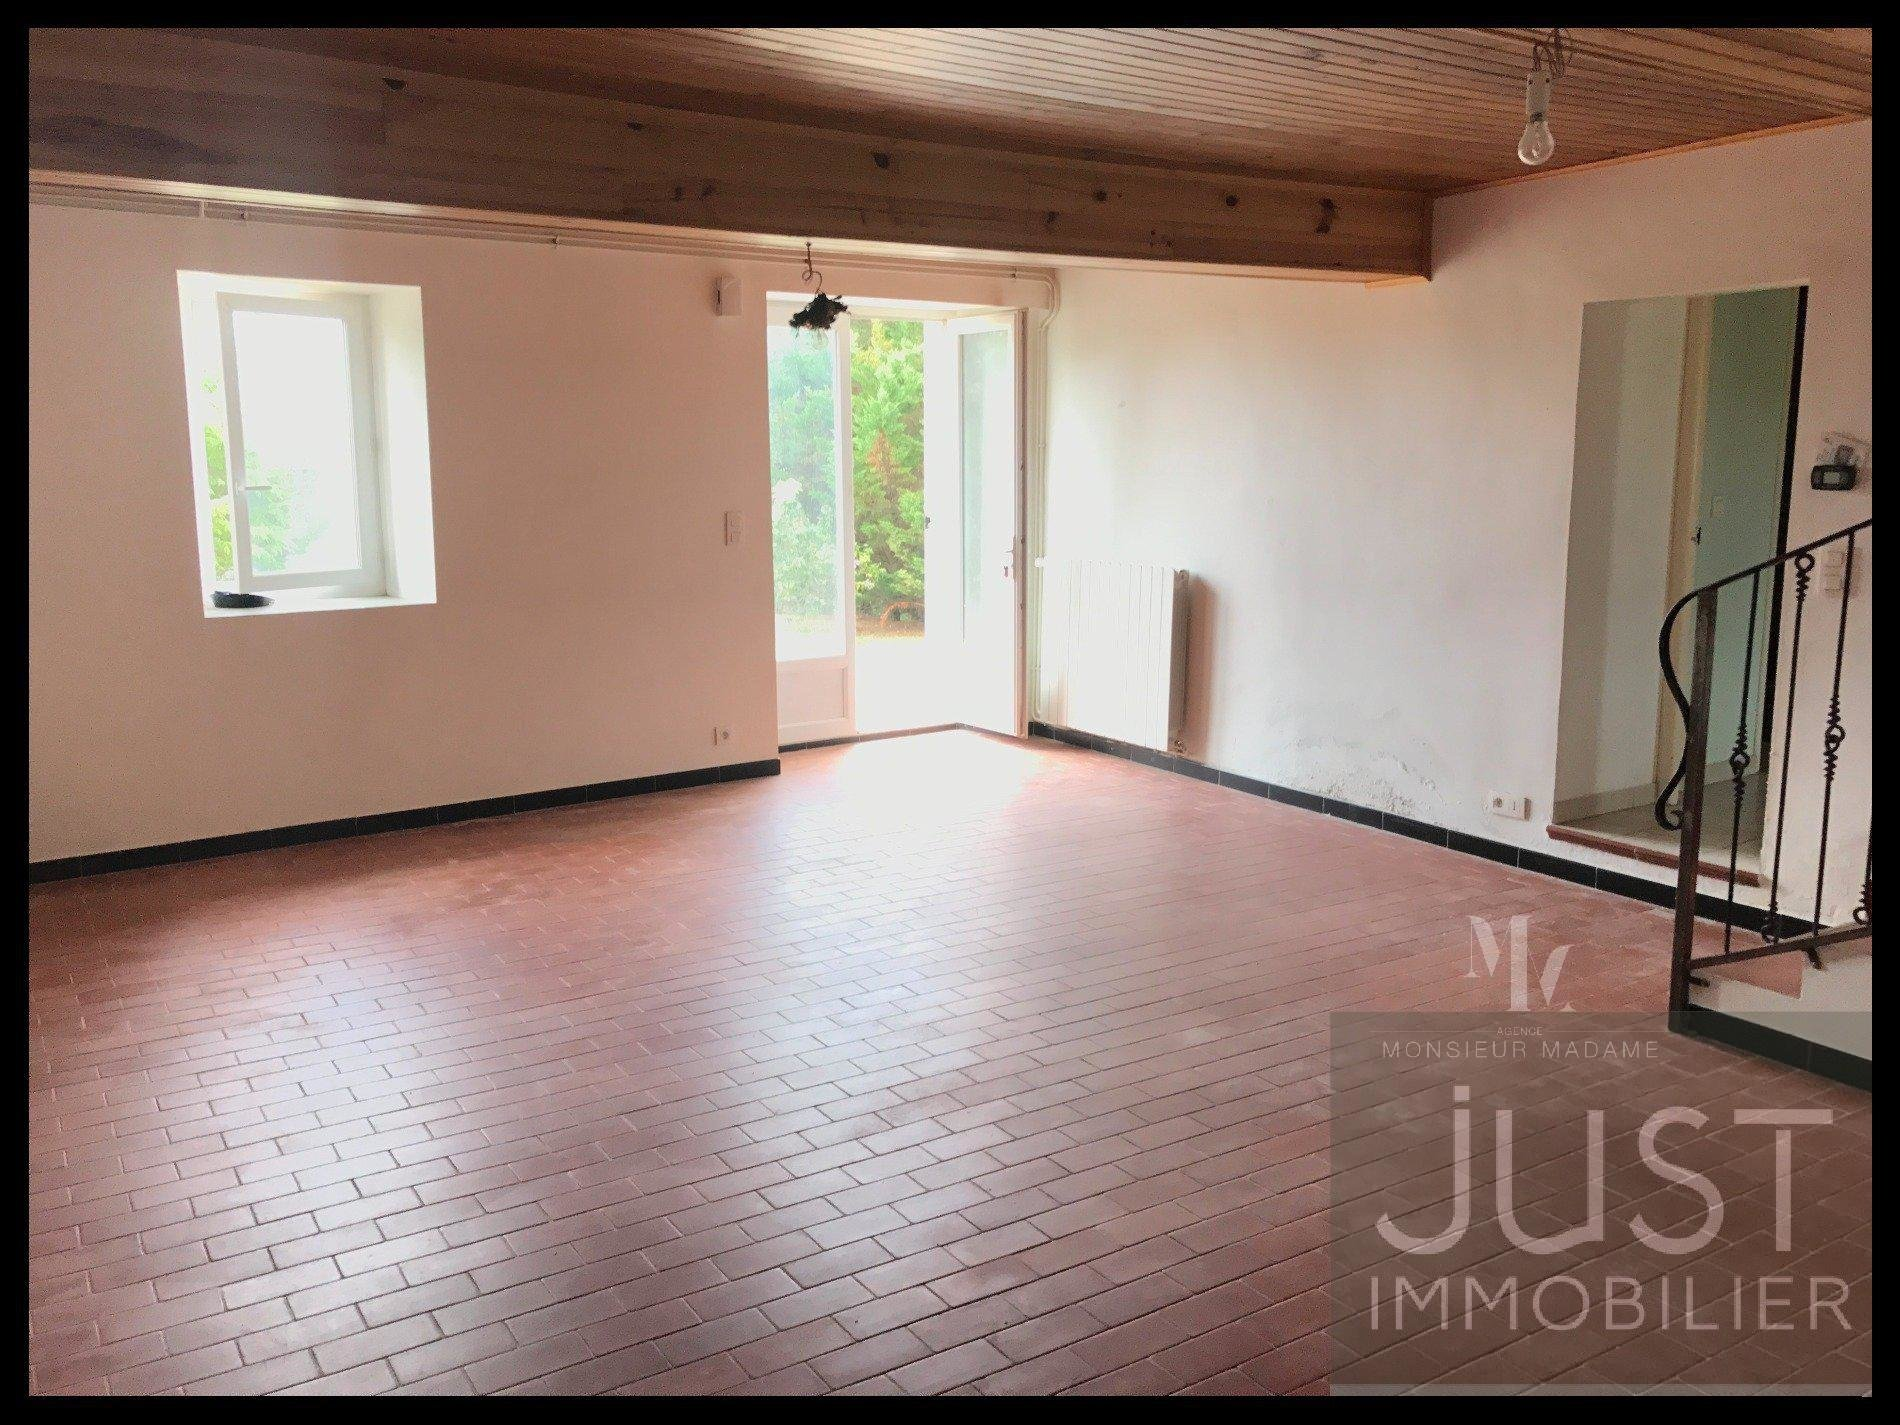 30 mn Villefranche, renovated farmhouse, two houses T5 on 9 ha of land